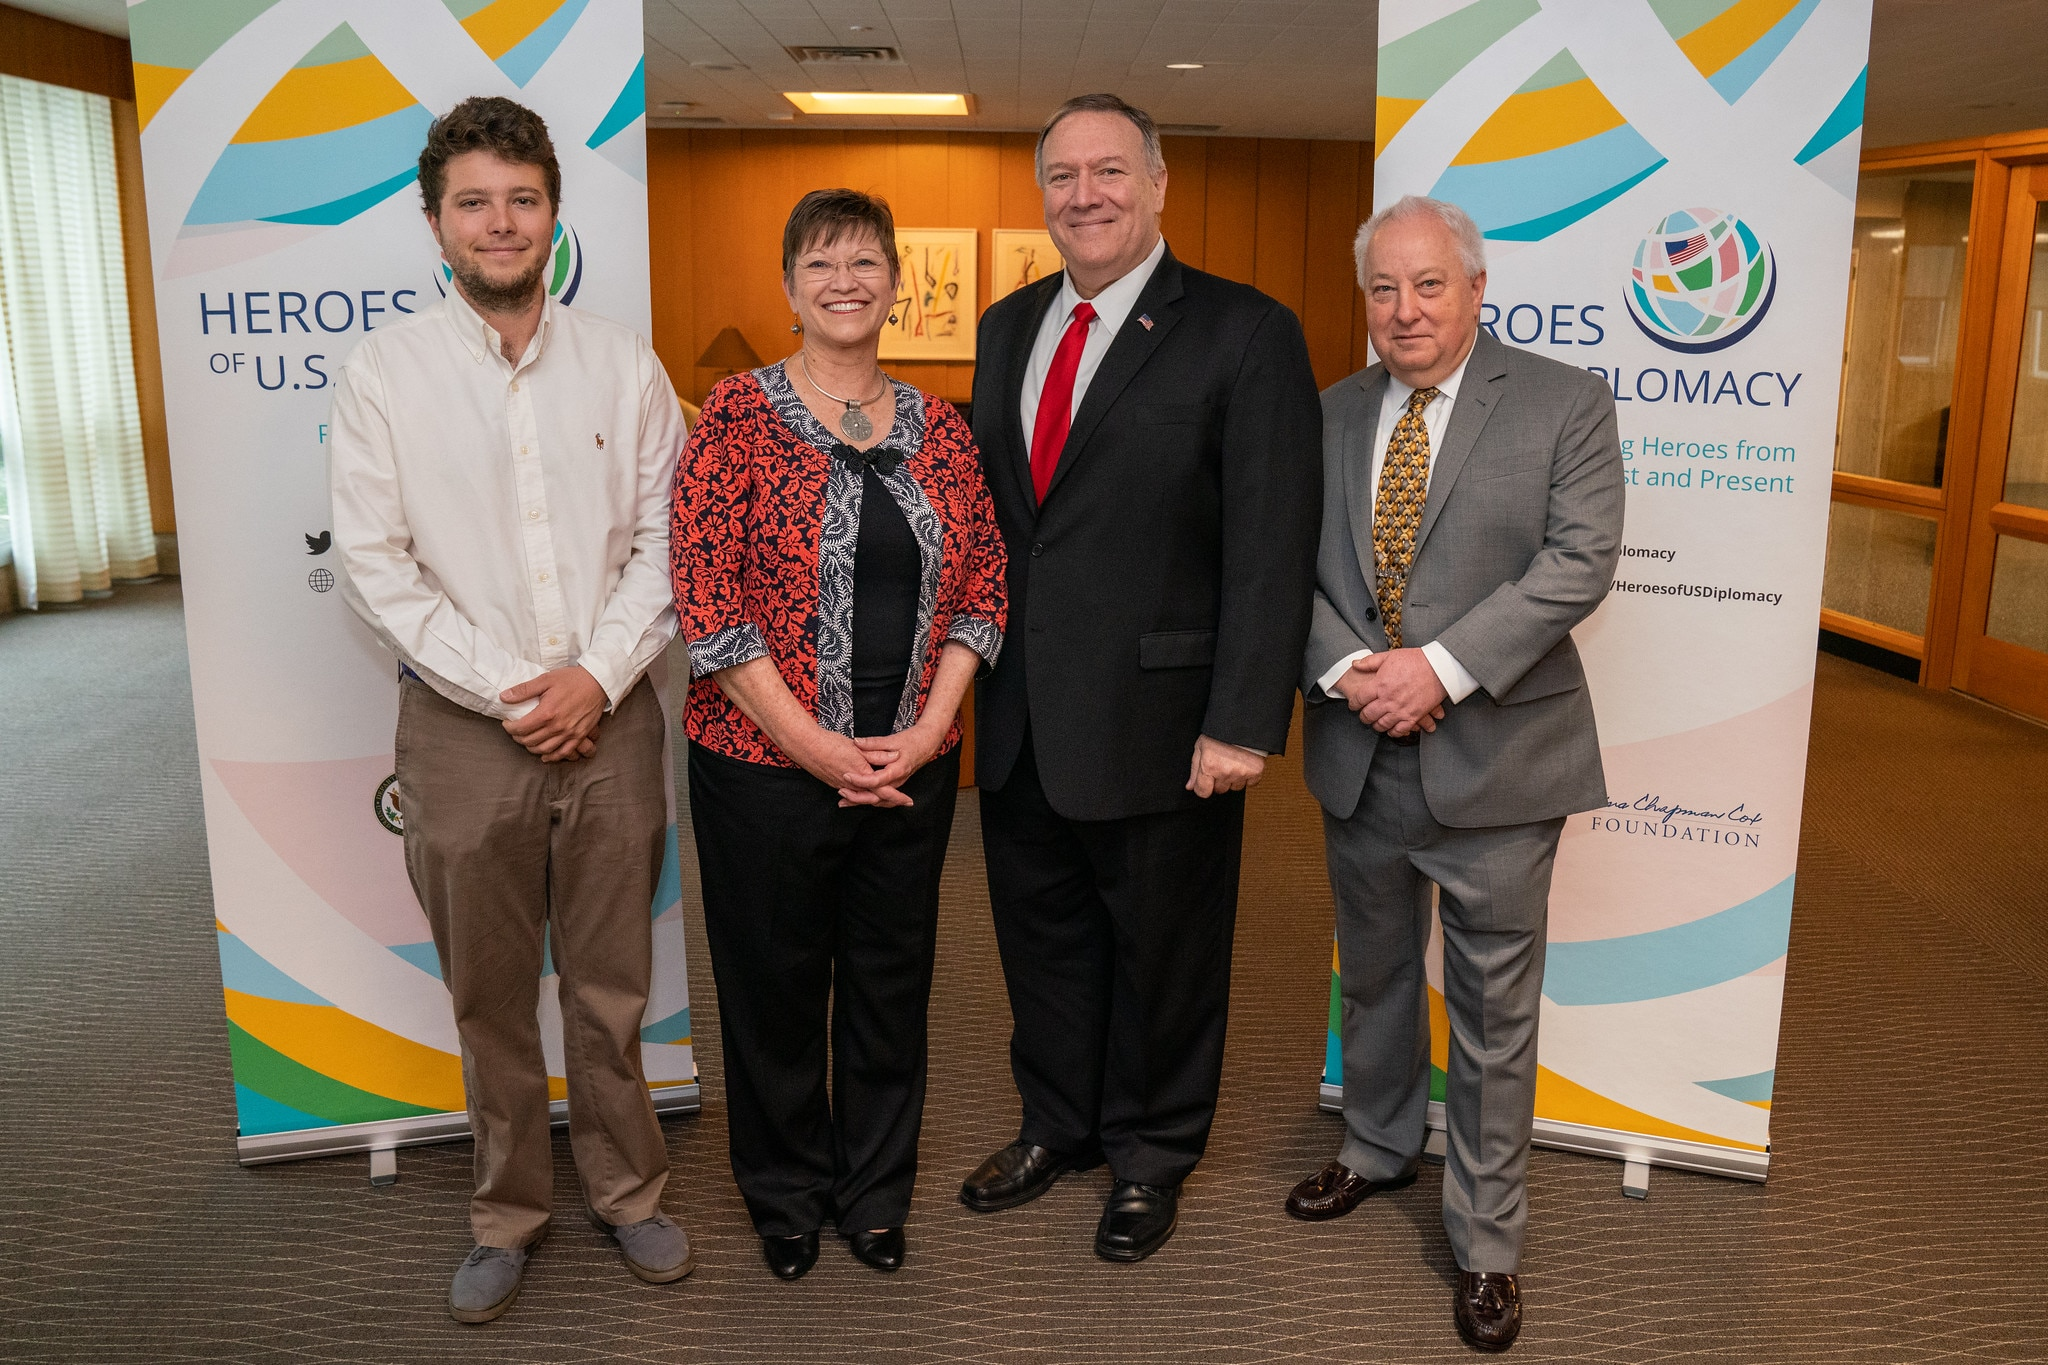 The inaugural Heroes of U.S. Diplomacy honoree, Elizabeth Slater, poses with U.S. Secretary of State Michael R. Pompeo and her family members in front of Heroes of U.S. Diplomacy banners.